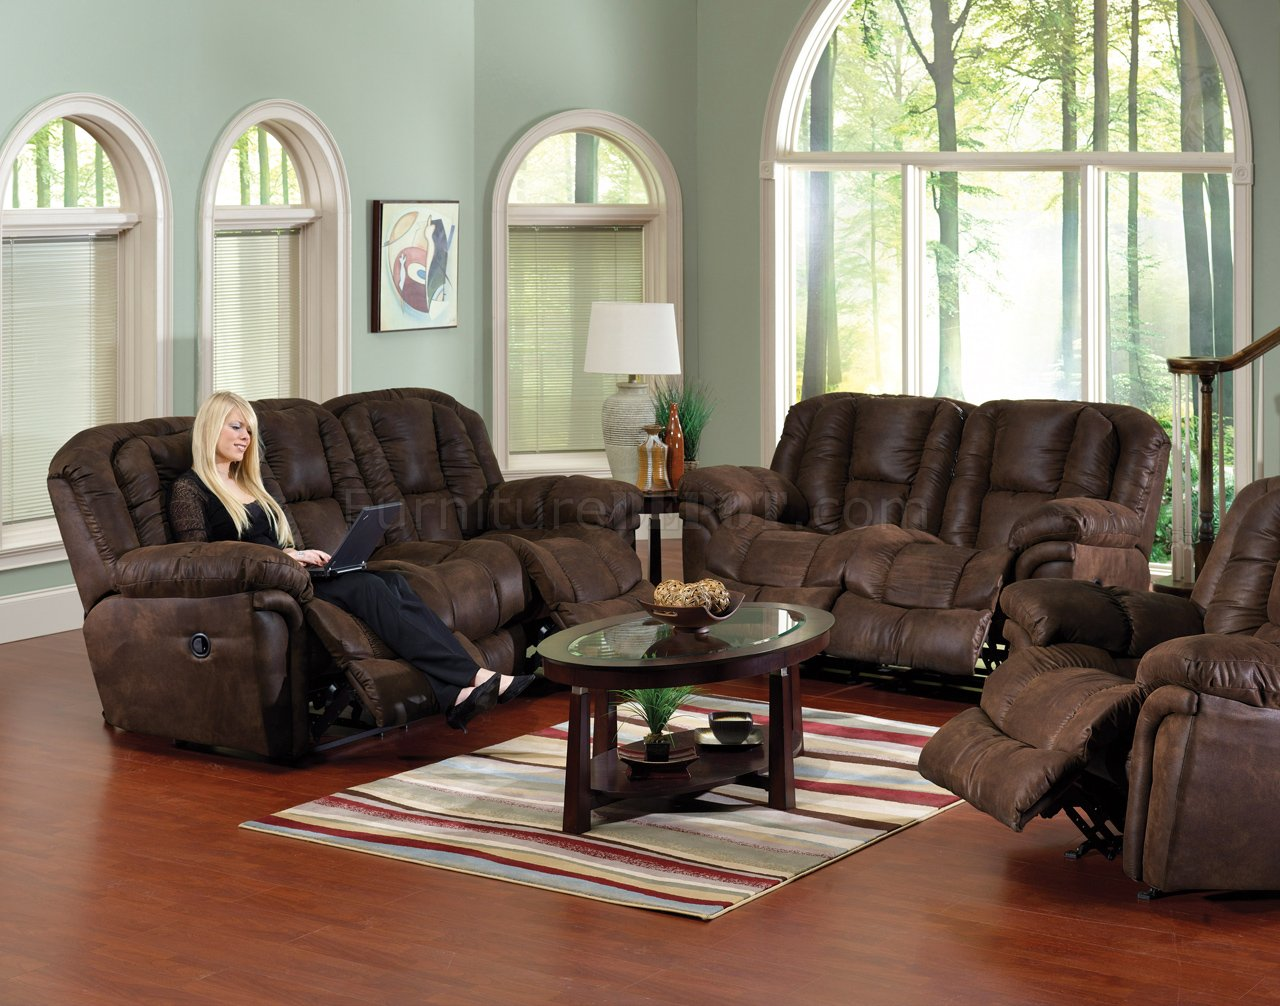 & Chocolate Faux Leather Contour Reclining Sofa u0026 Loveseat Set islam-shia.org